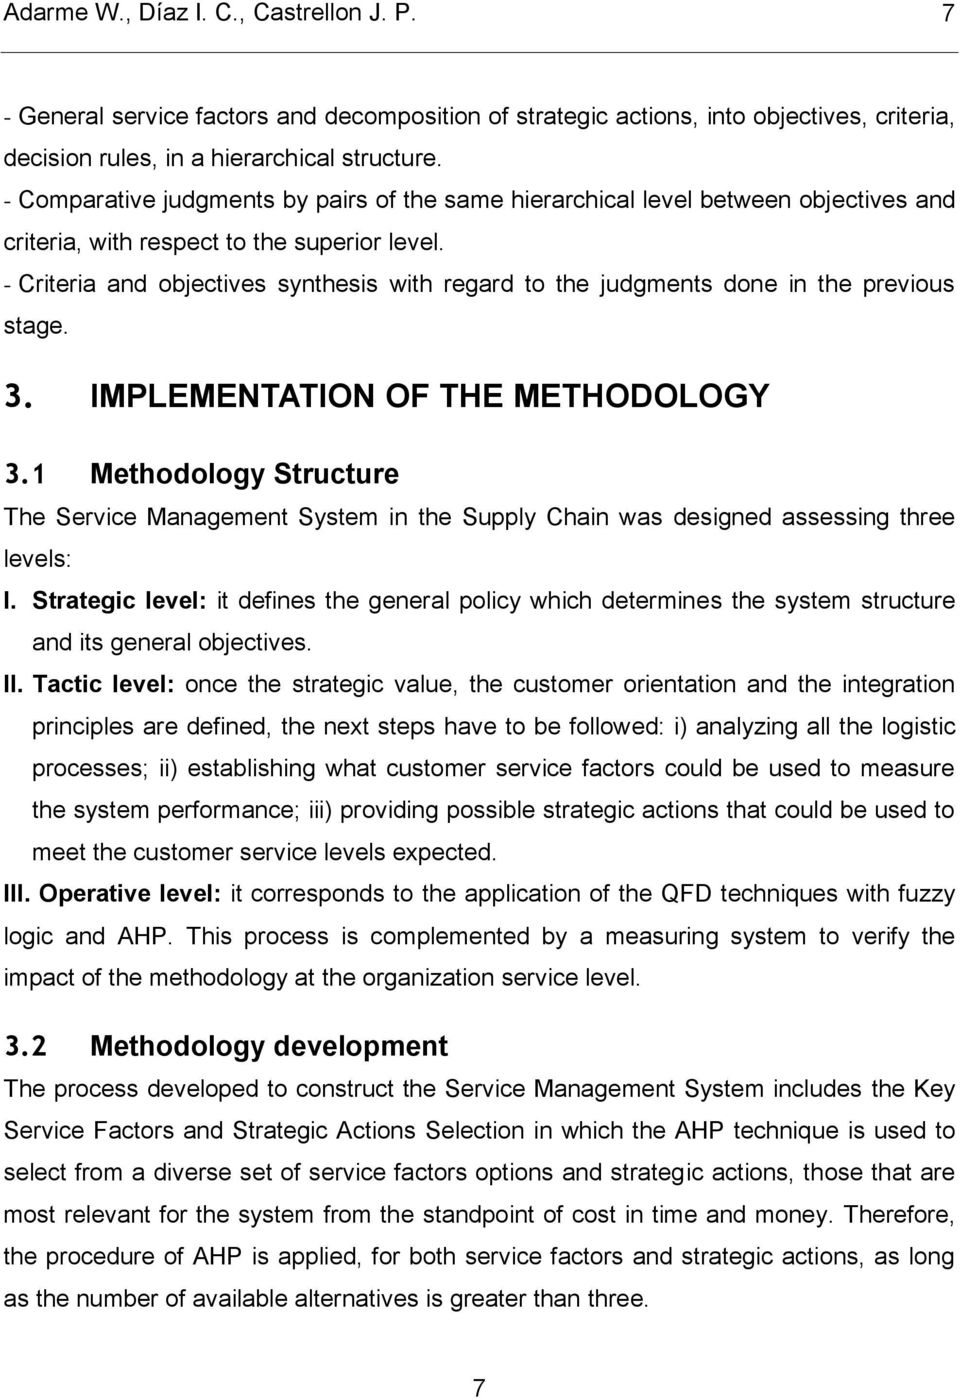 - Criteria and objectives synthesis with regard to the judgments done in the previous stage. 3. IMPLEMENTATION OF THE METHODOLOGY 3.